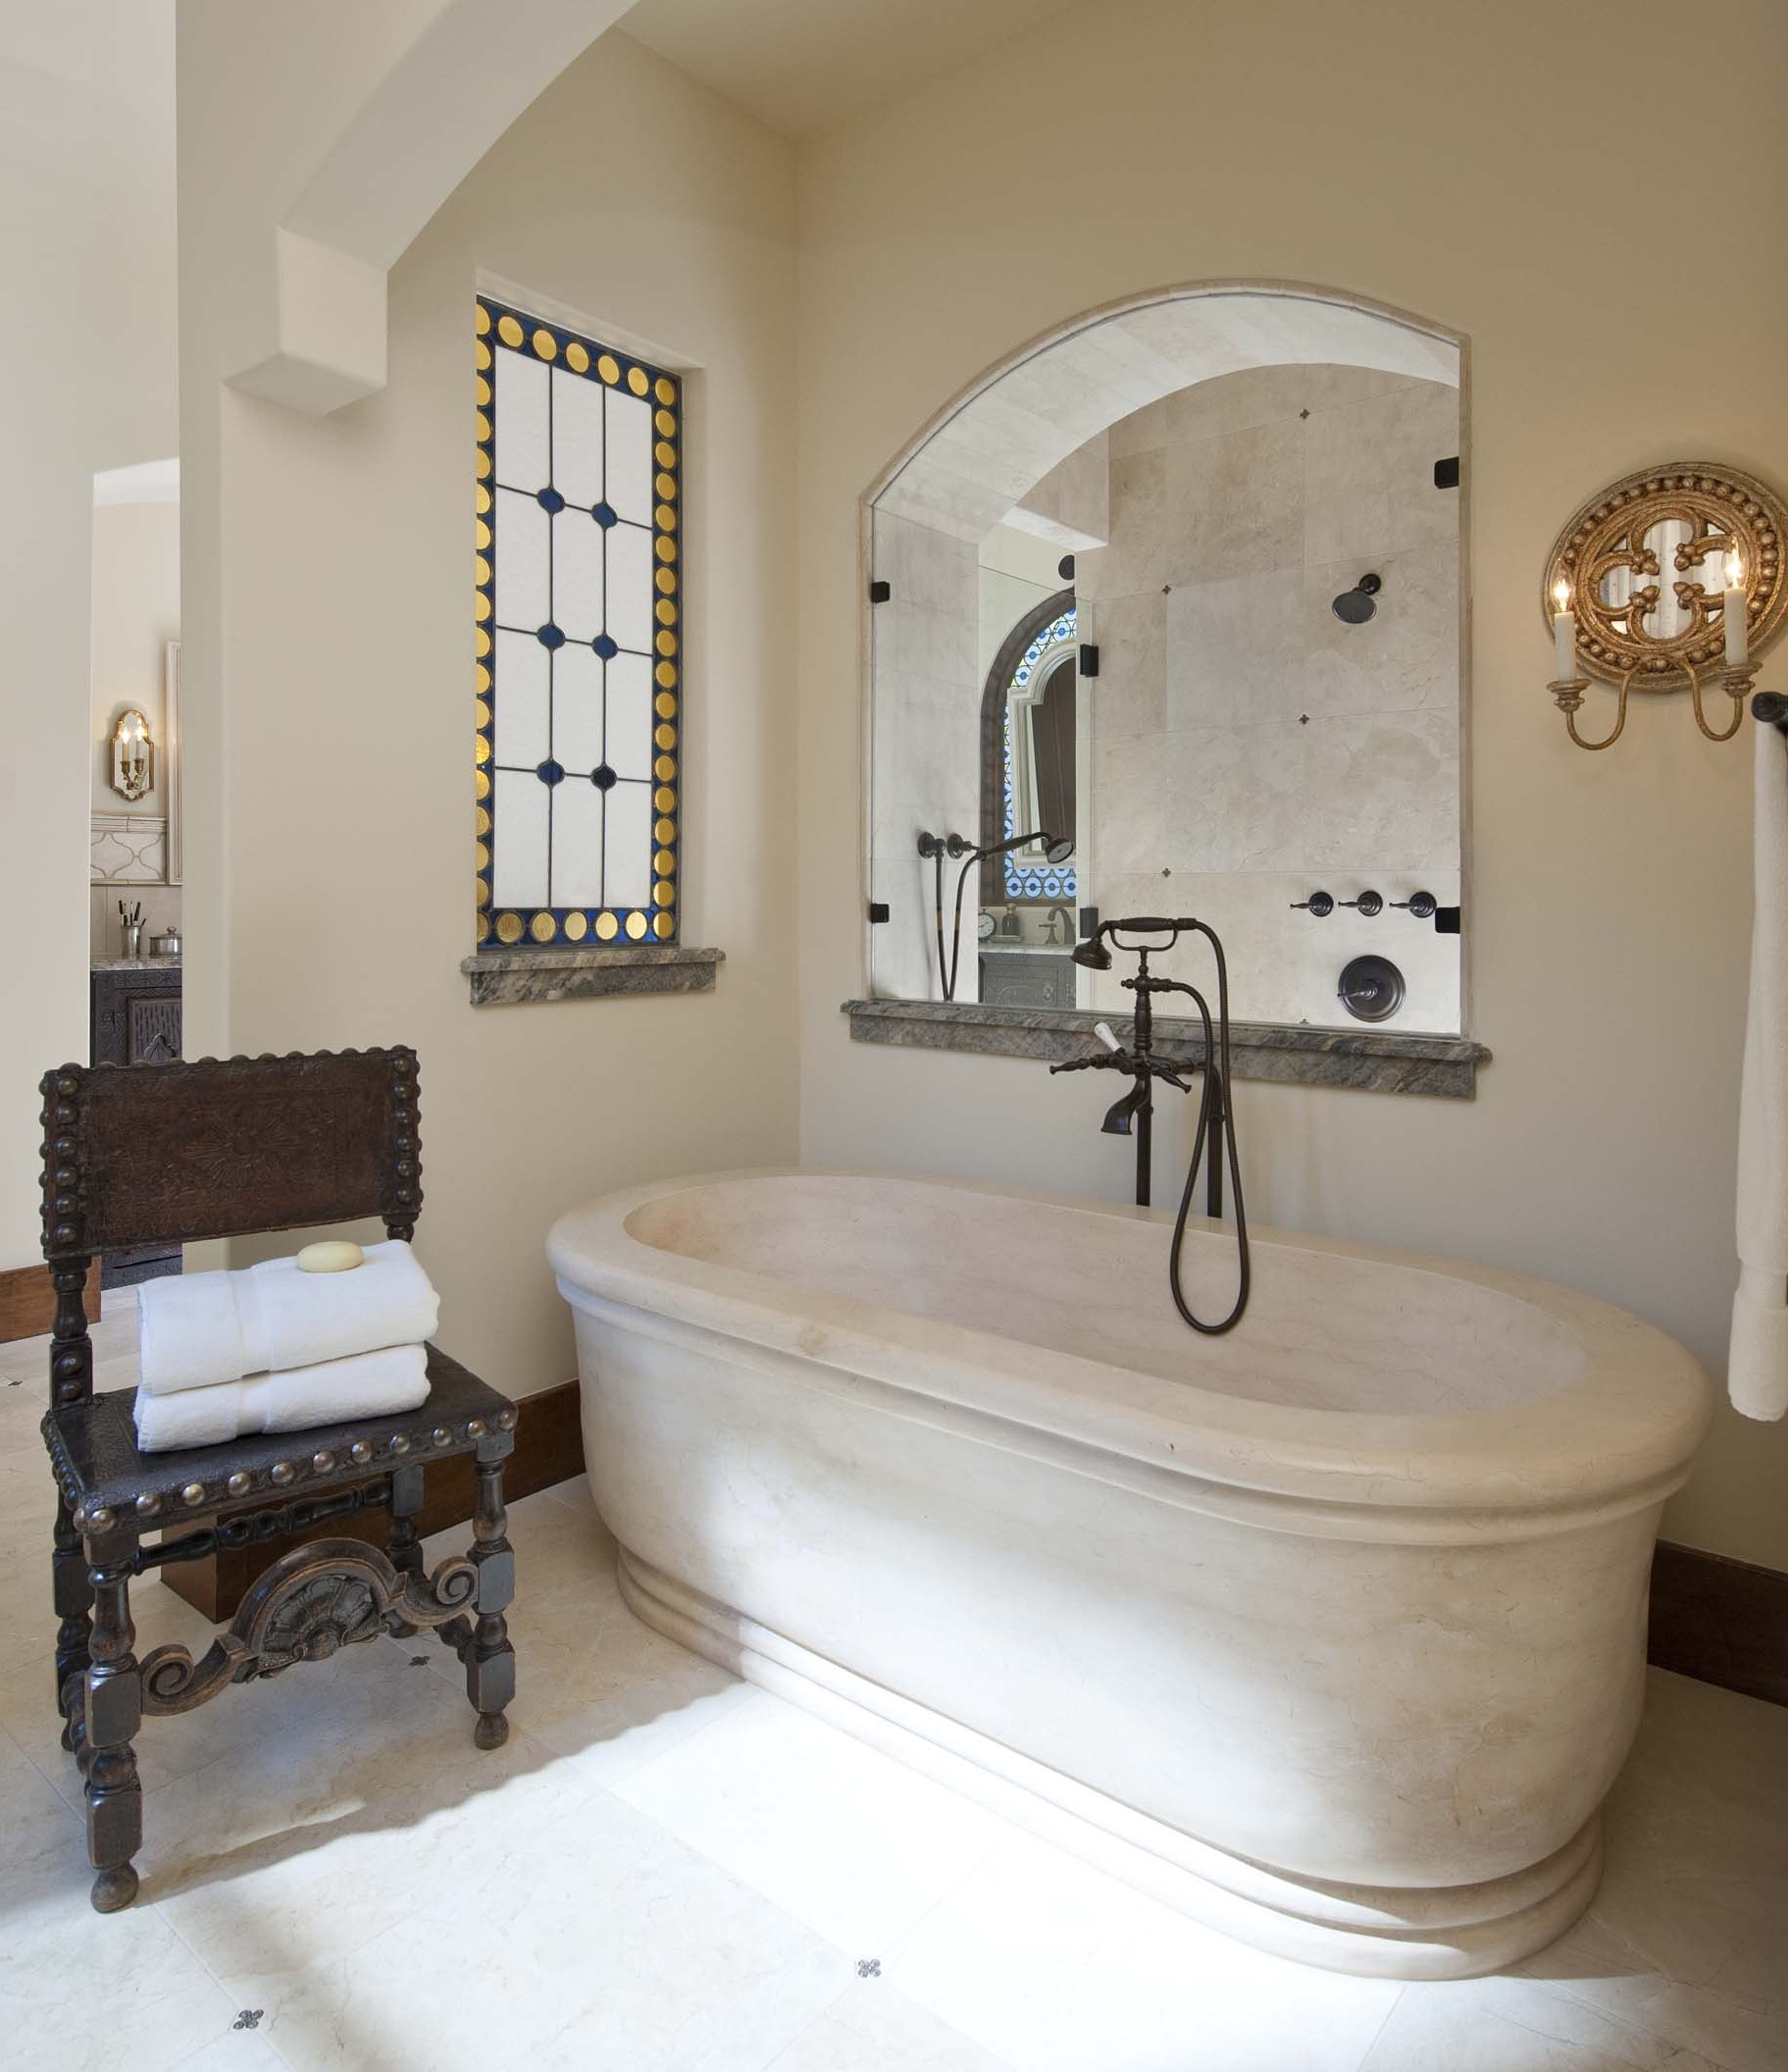 Spanish Retro Style Bathroom With Stone Bathtub (Image 18 of 20)